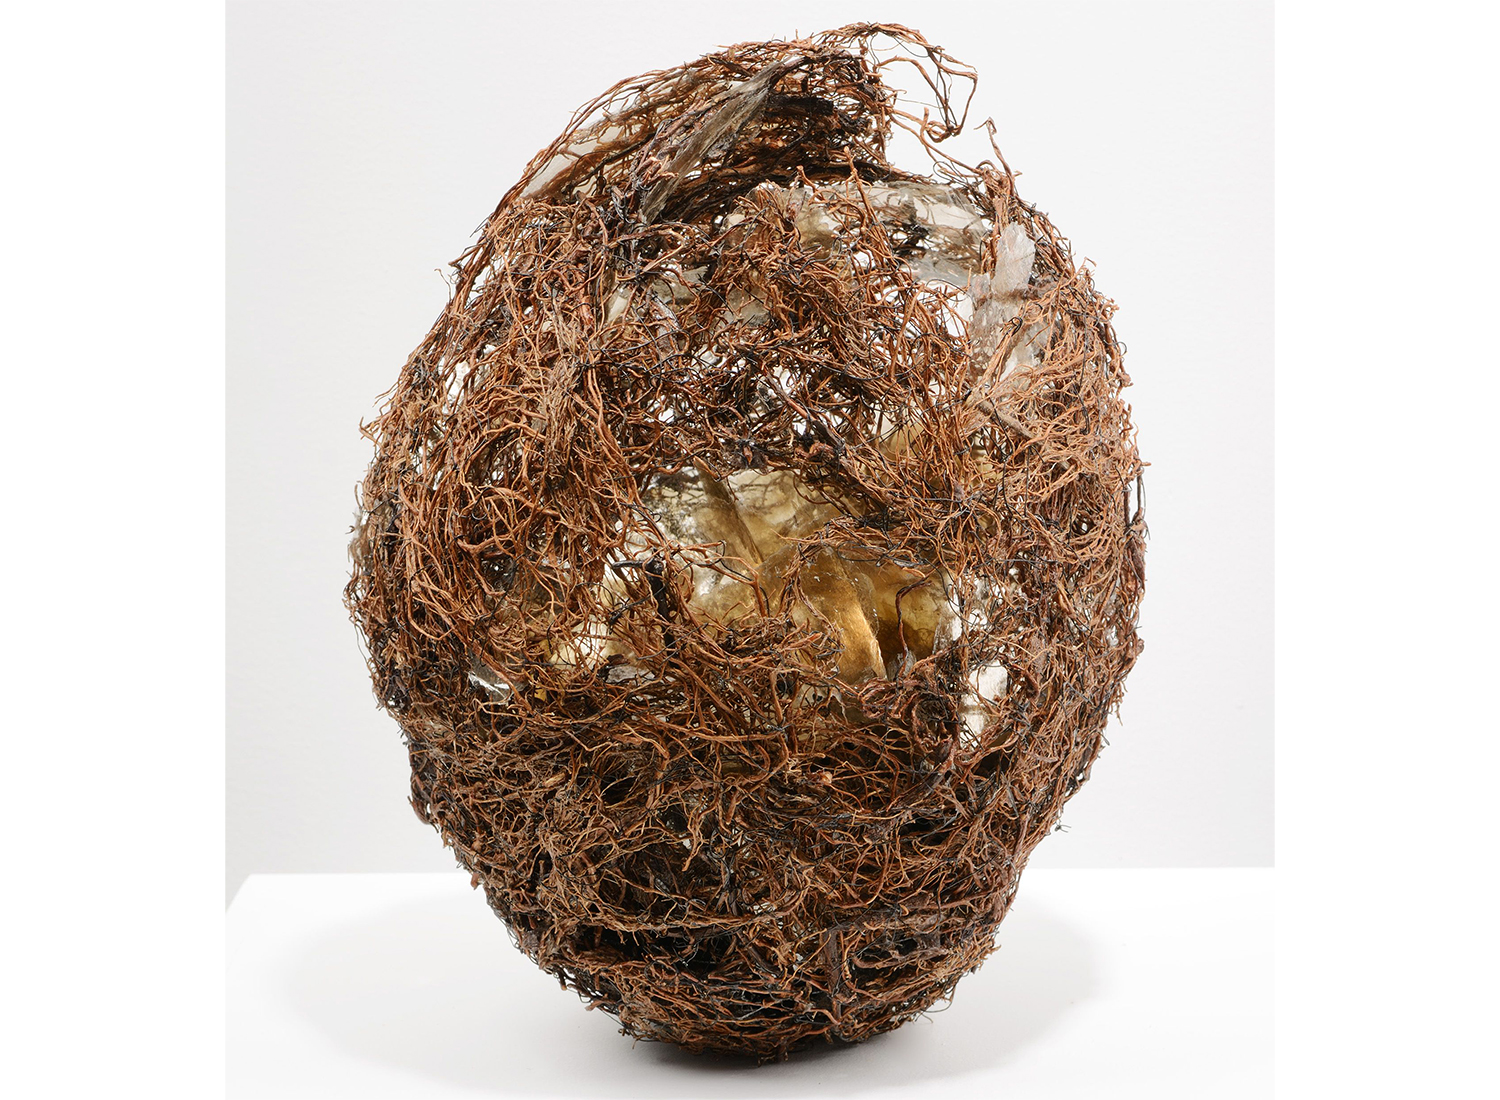 Closely Held natural art sculpture from Donna Forma